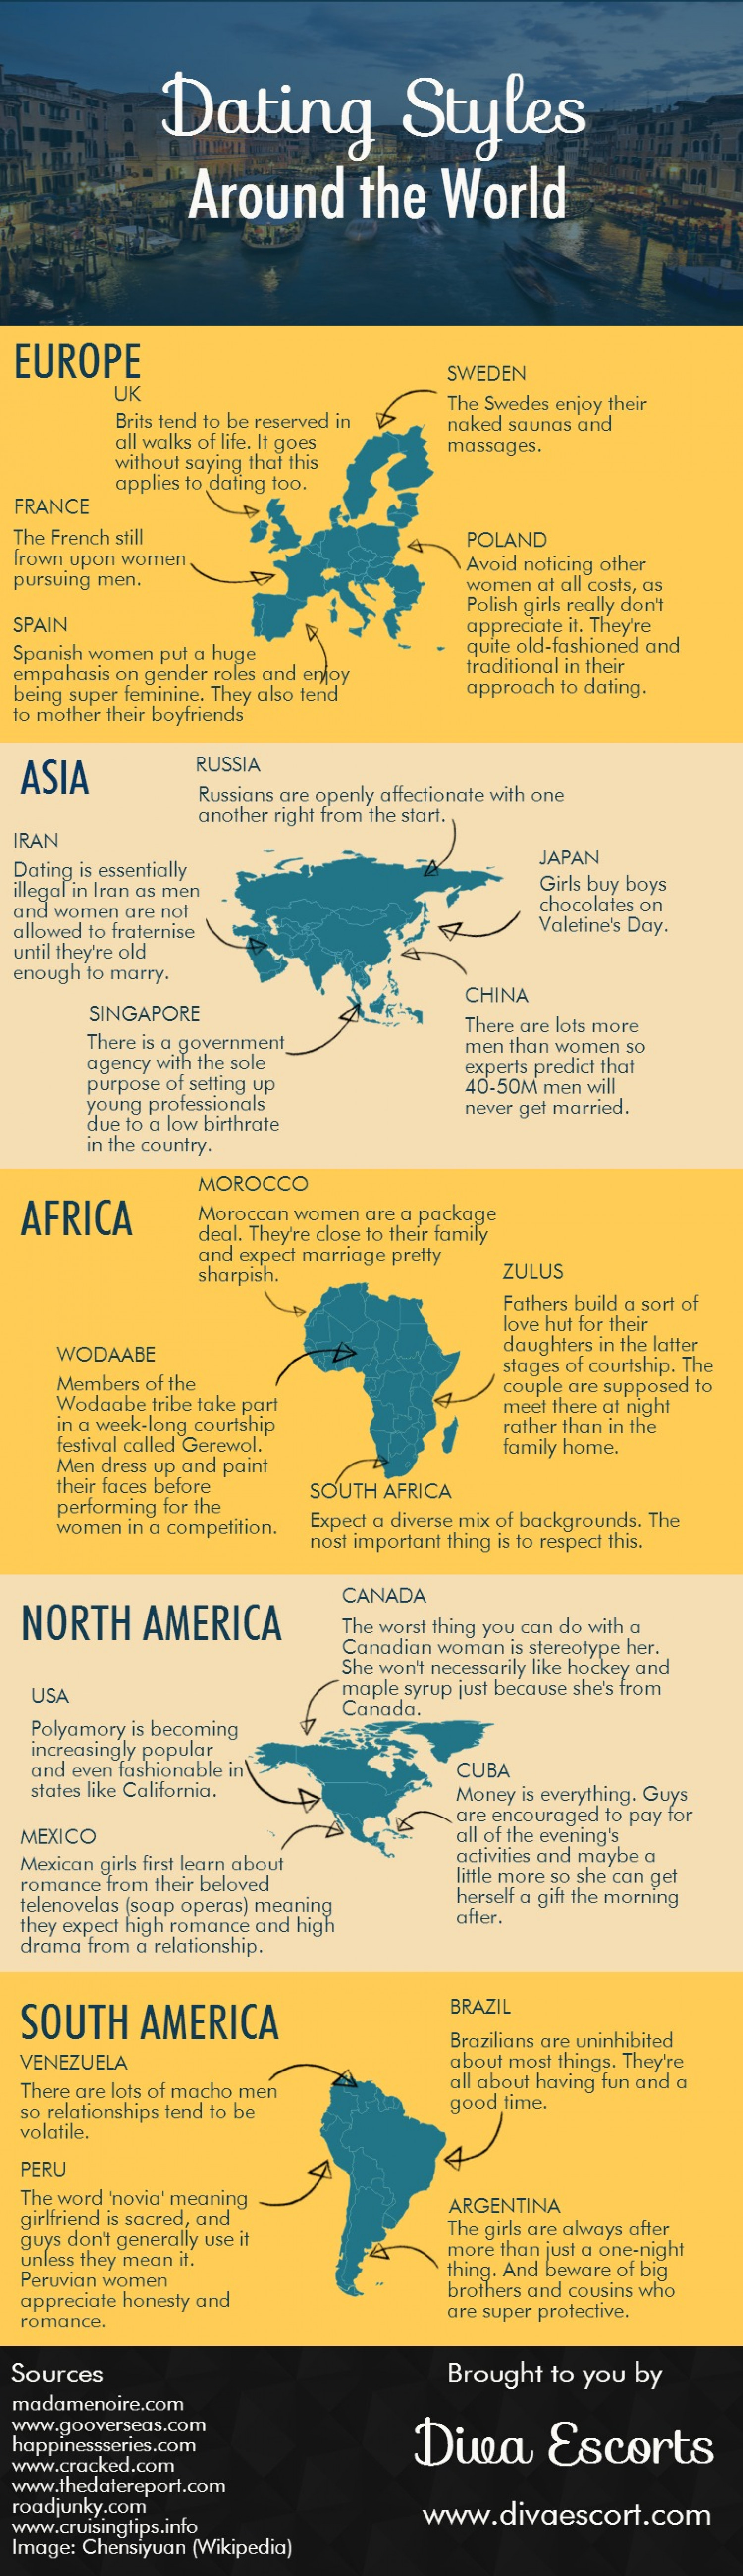 Dating Styles Around the World Infographic